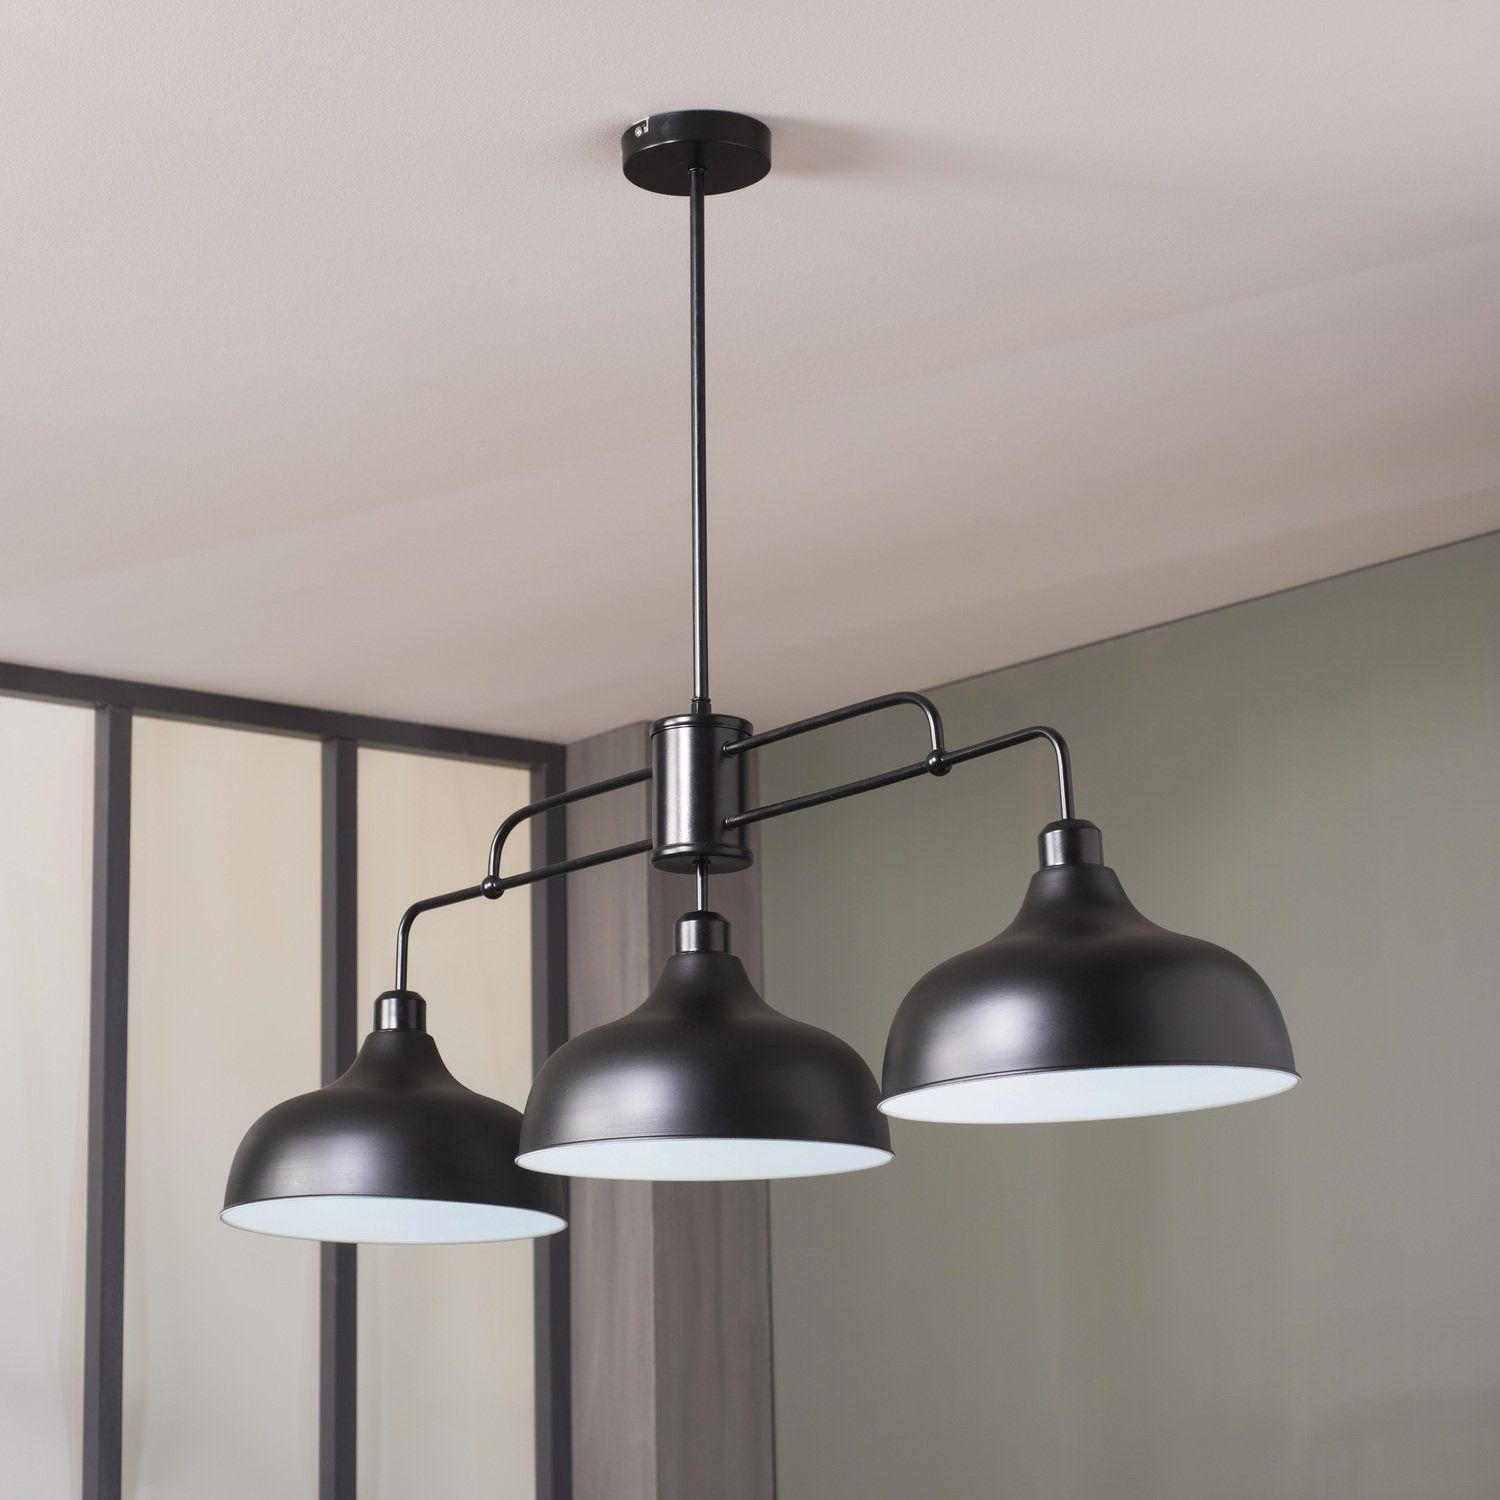 Lampe Suspension Style Industriel Cette Suspension Design Adopte Un Style Résolument